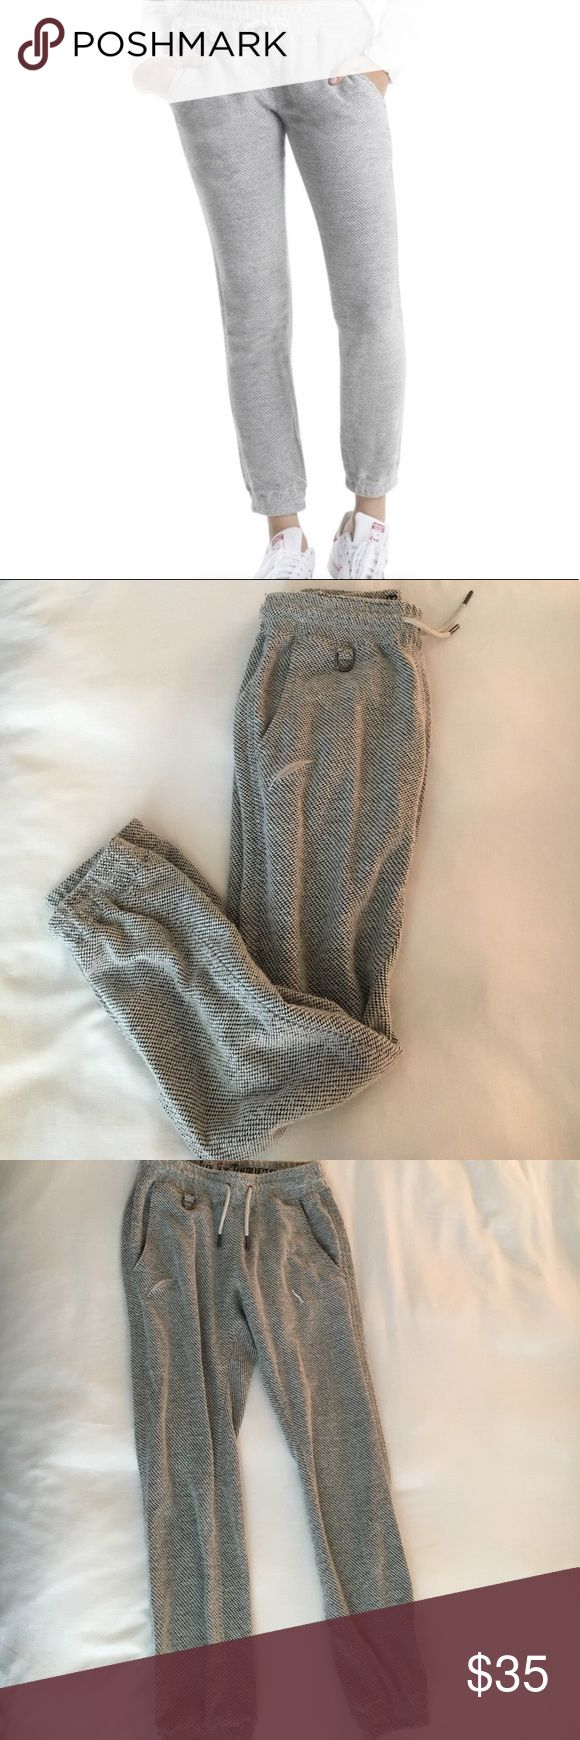 Publish Brand Cassidy Jogger Pant Size 27 Publish Brand Cassidy Jogger Pants Size 27. Grey/White Fabric with elastic waist and pant bottoms. Some pilling/loose string due to washing and nature of the fabric. Only worn a few times, comfy cute pants! Publish Pants Track Pants & Joggers